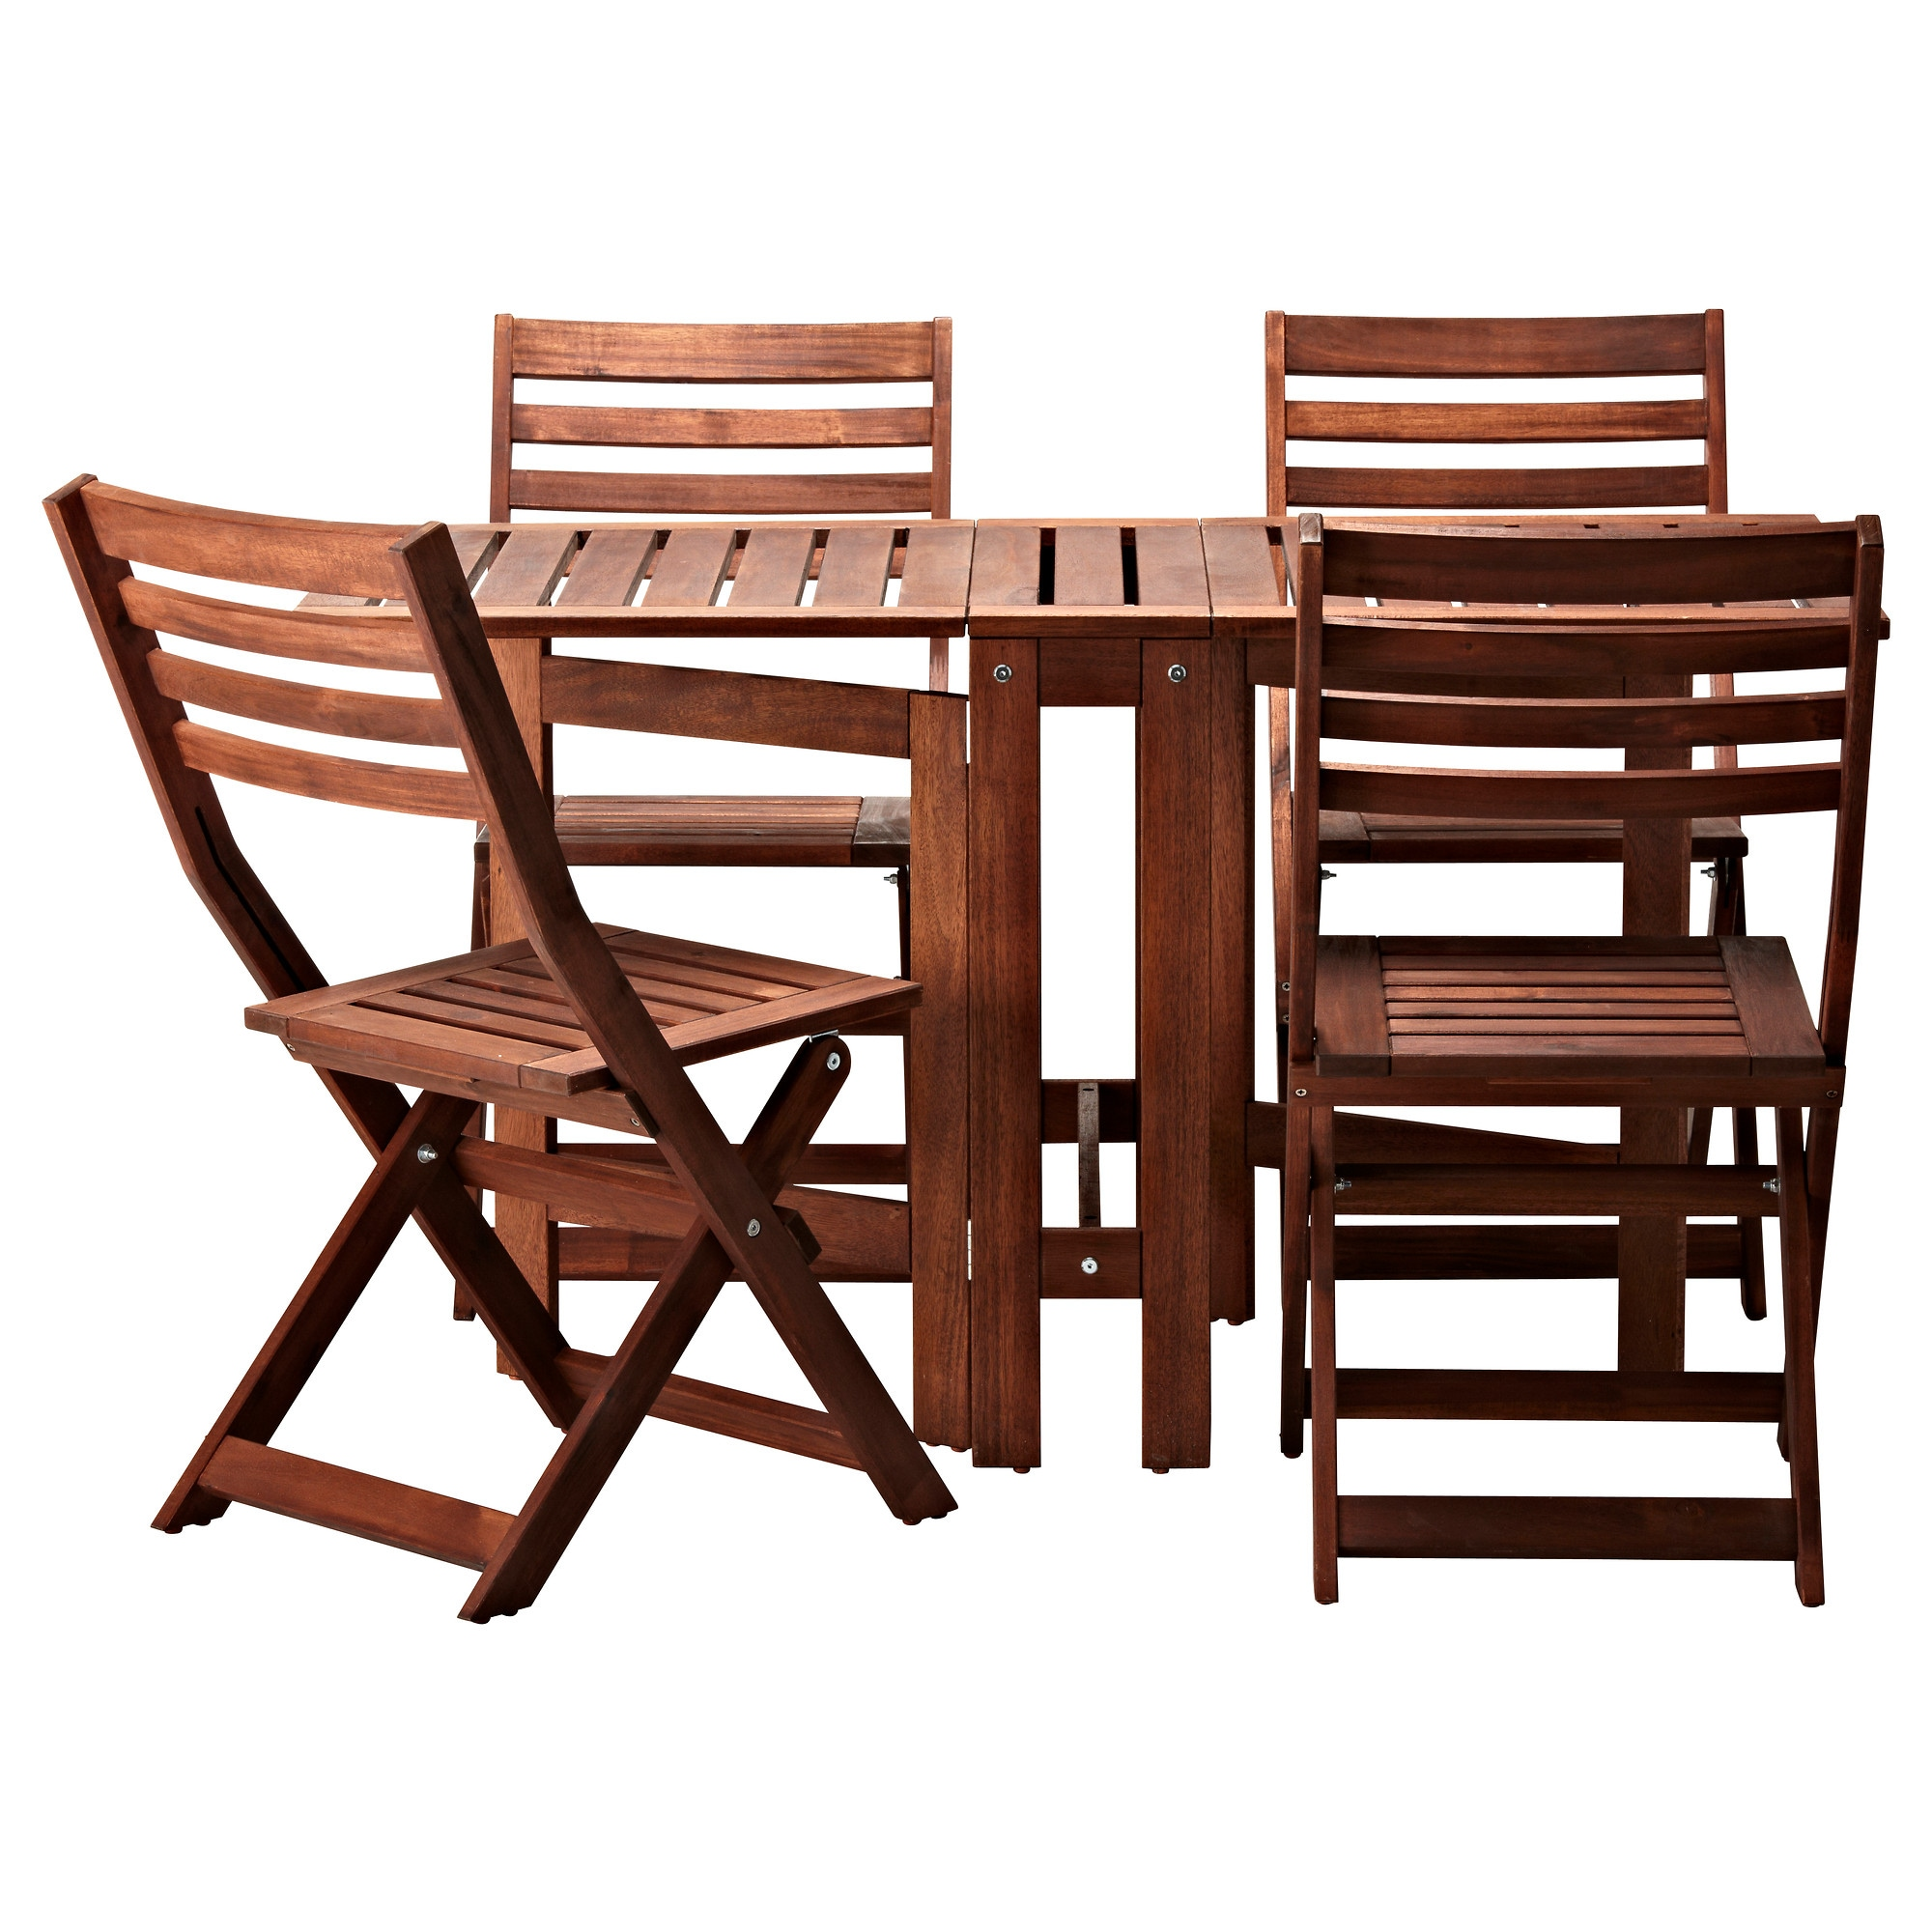 Ikea garden furniture decoration access for Small outdoor table and chairs